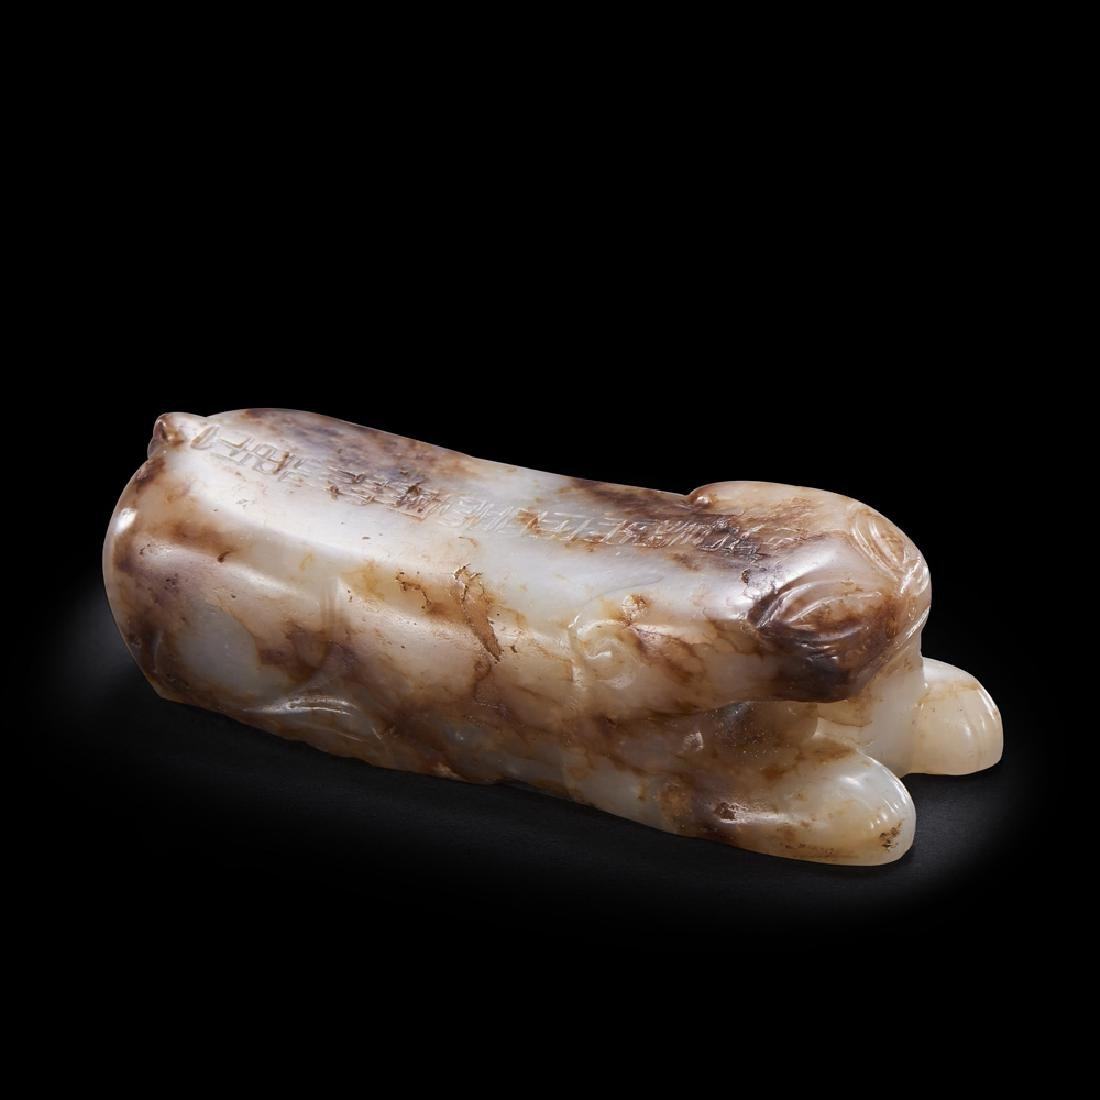 A CHINESE INSCRIBED WHITE AND RUSSET JADE TIGER TALLY